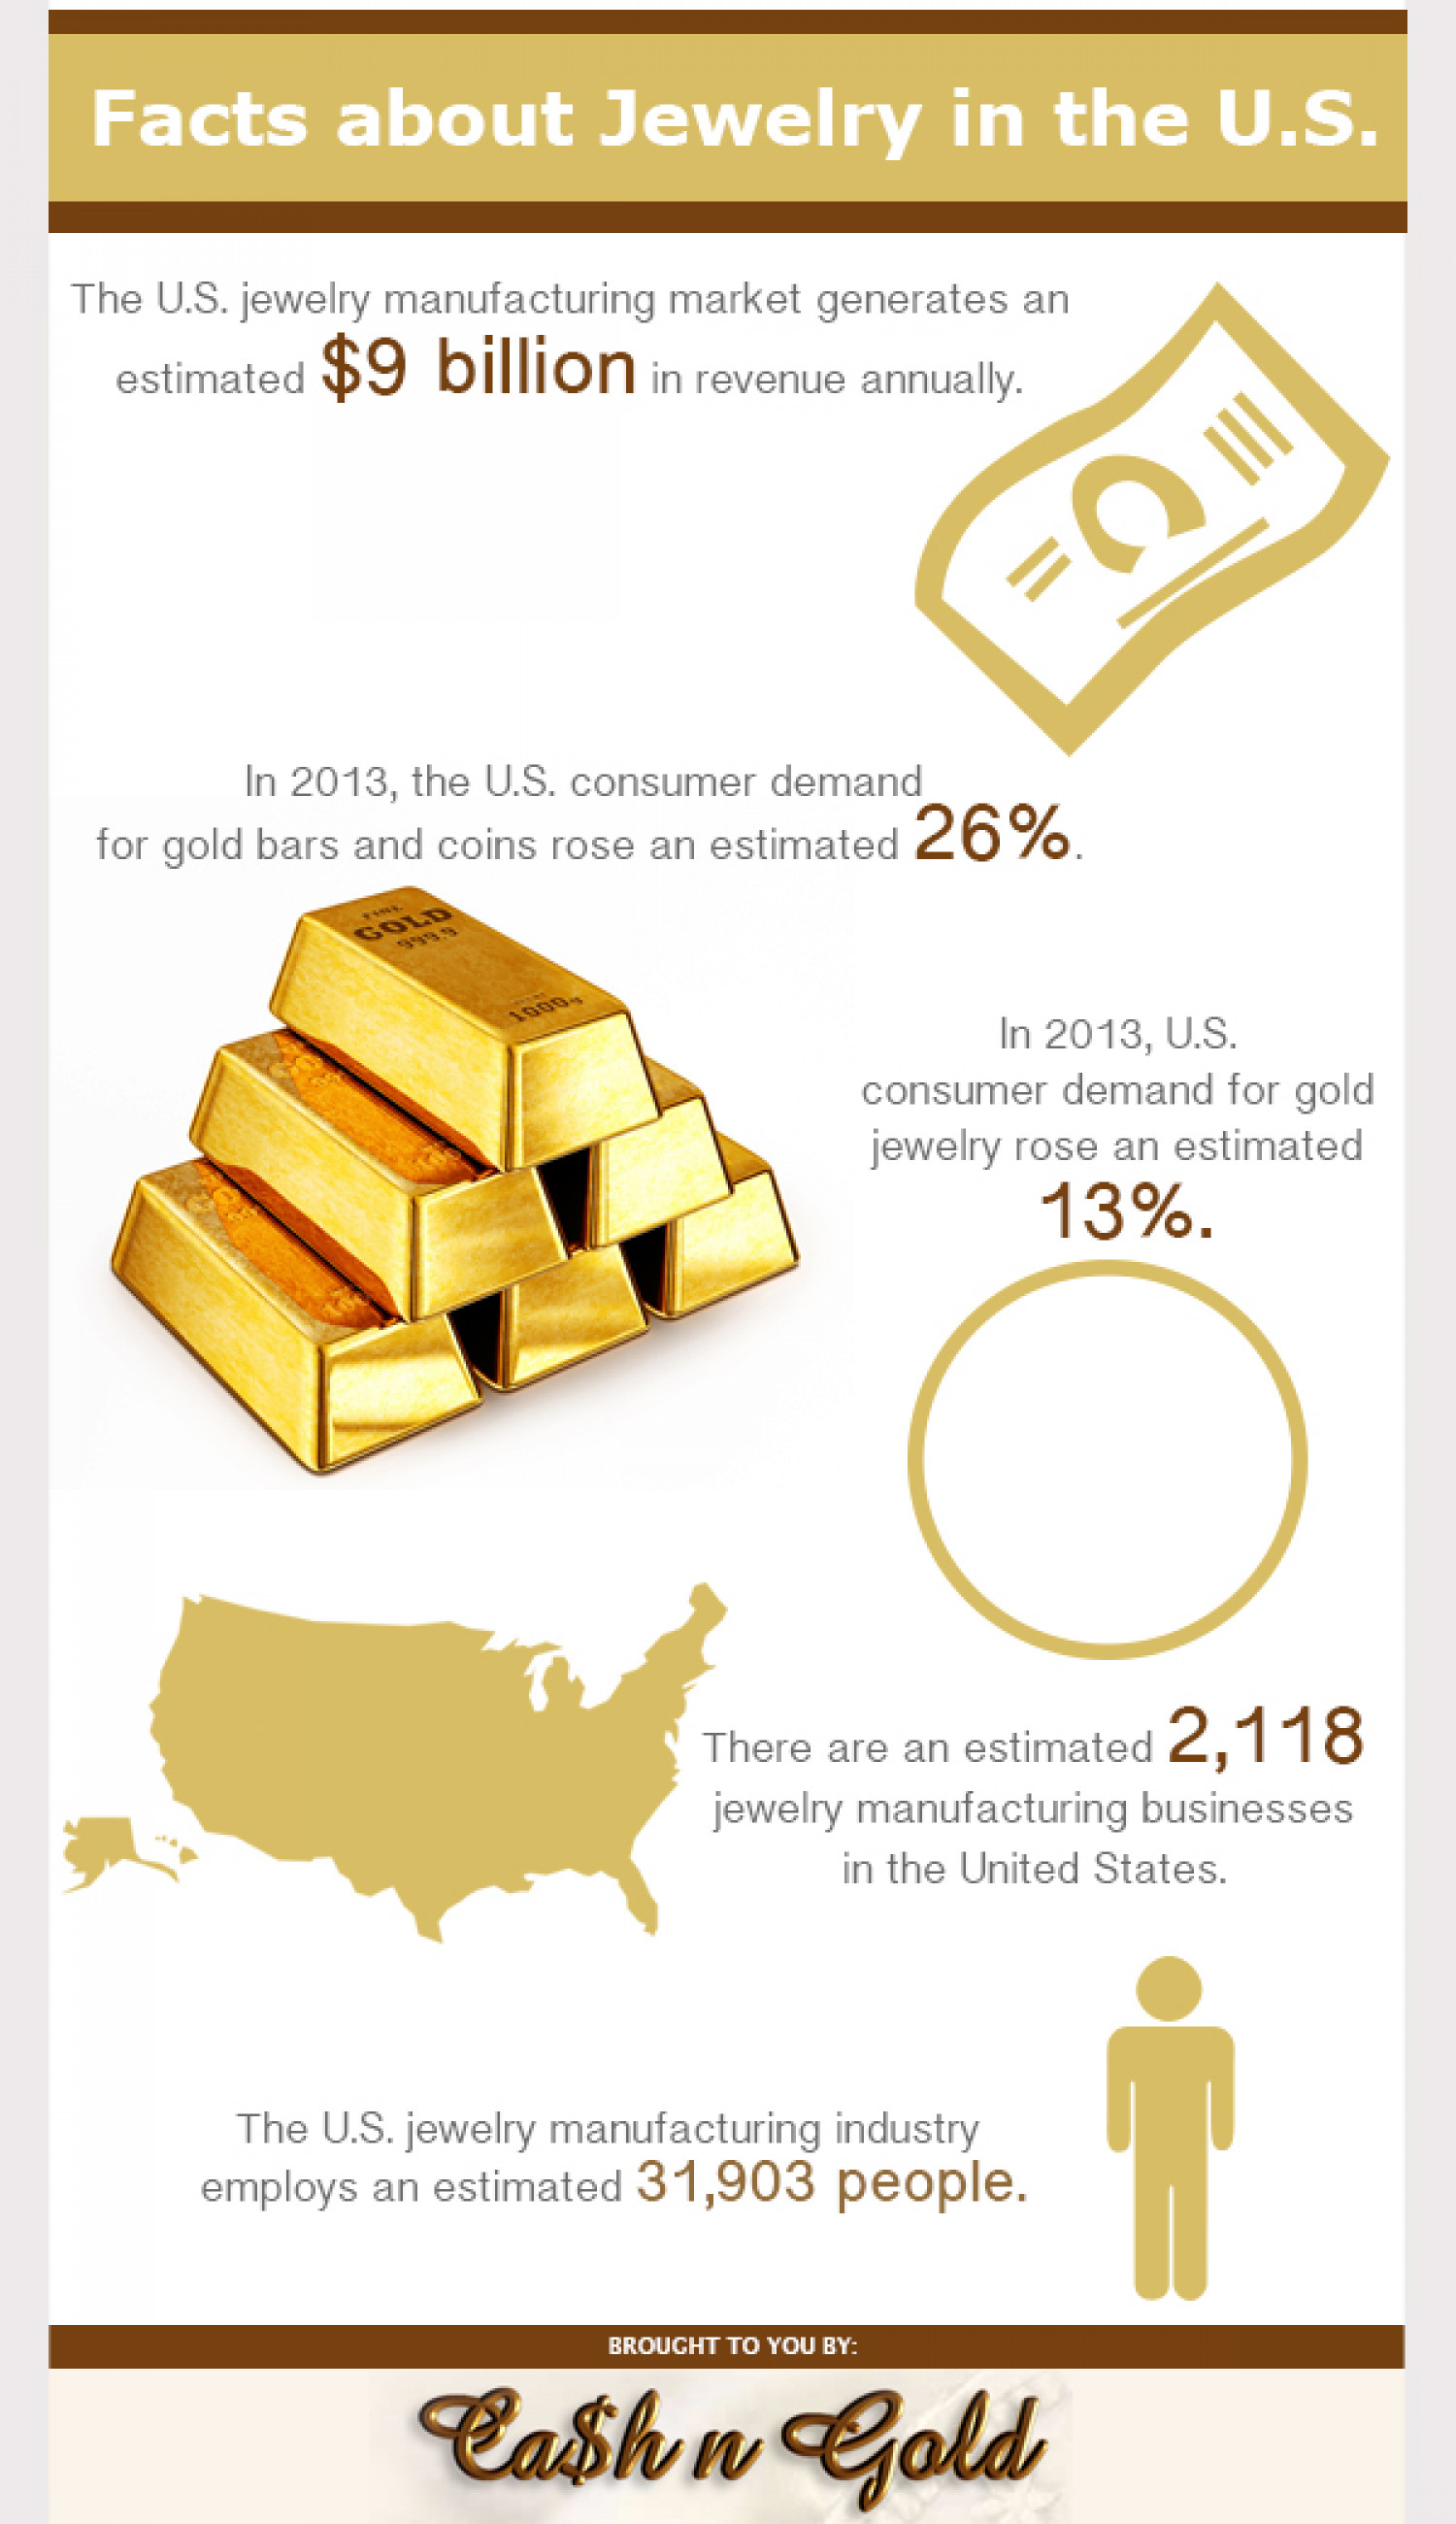 Facts about Jewelry in the U.S. Infographic